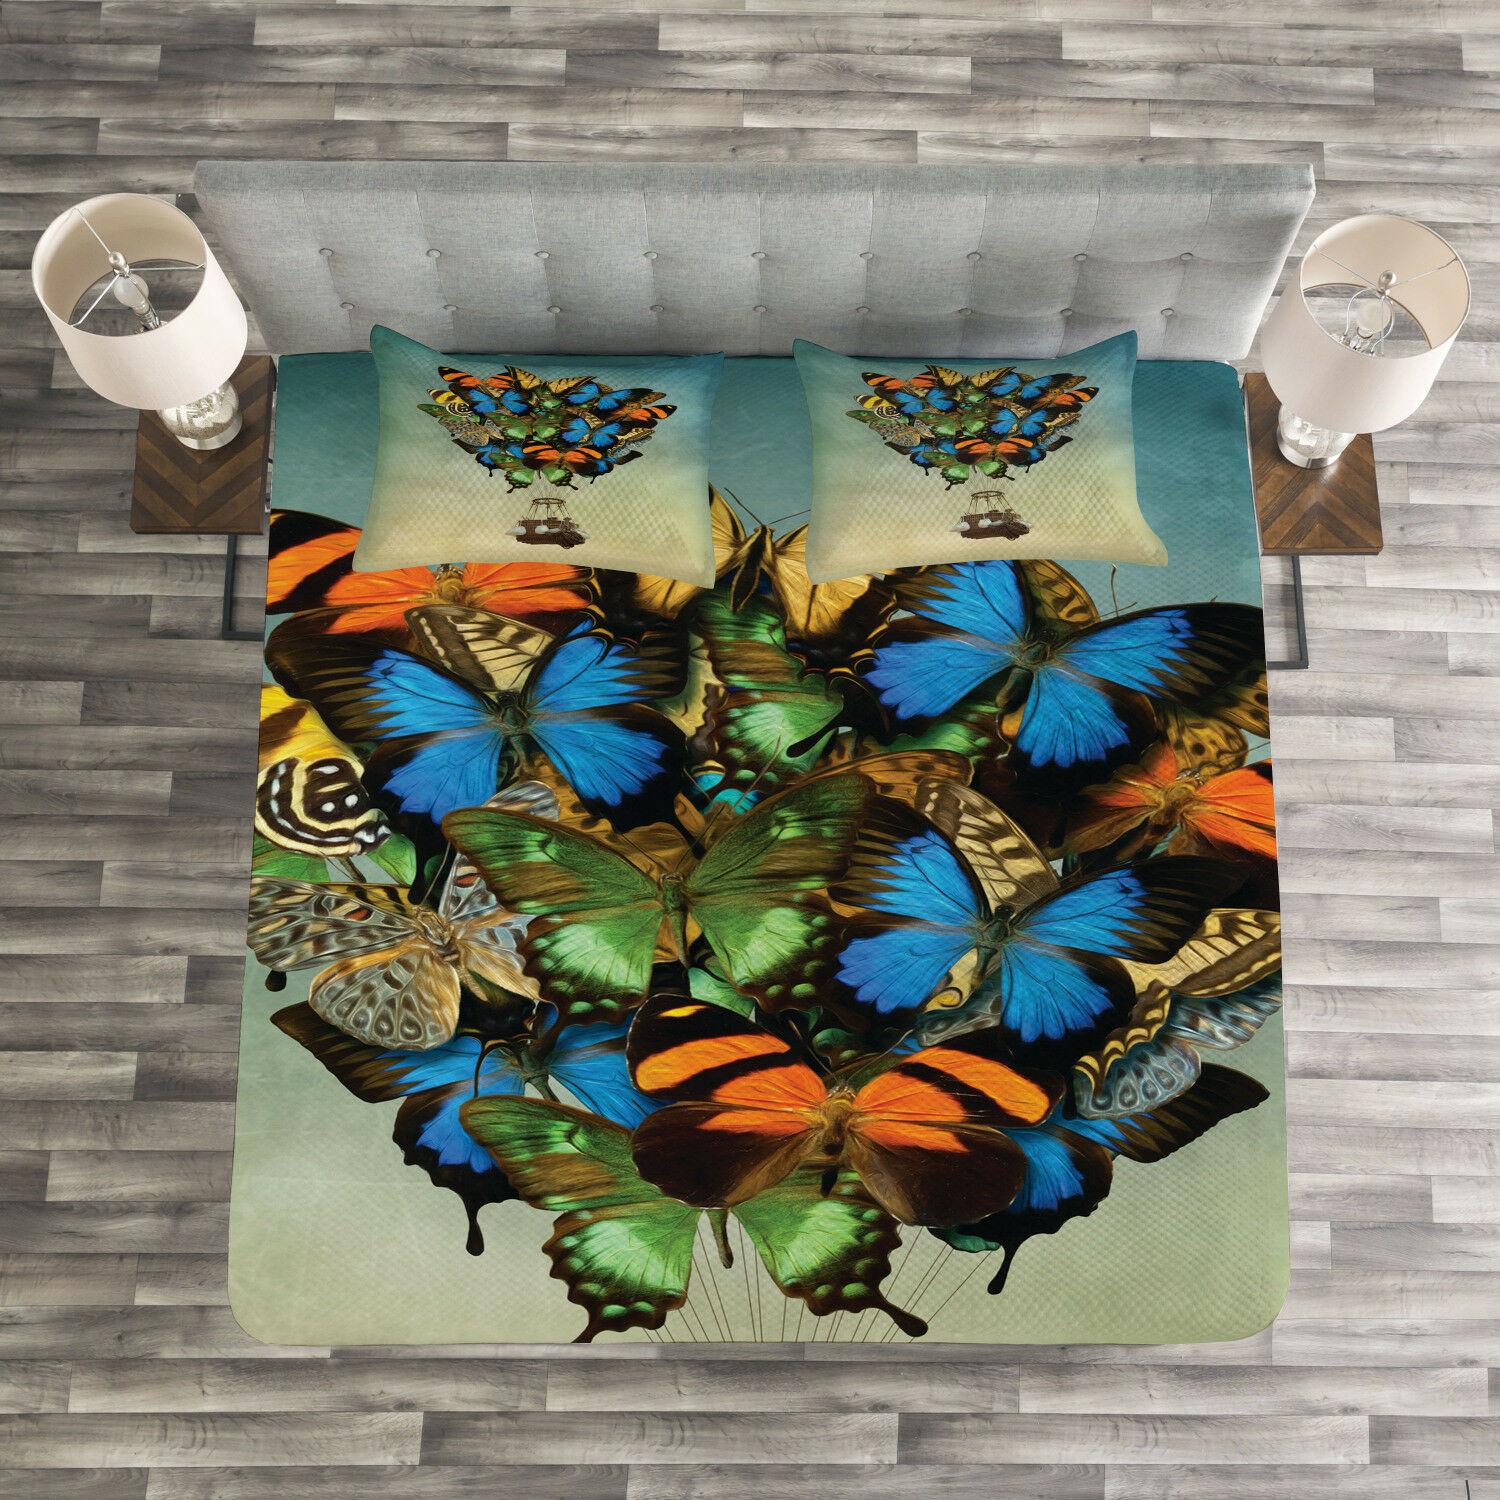 Butterfly Quilted Bedspread & Pillow Shams Set, Spring Season Animals Print